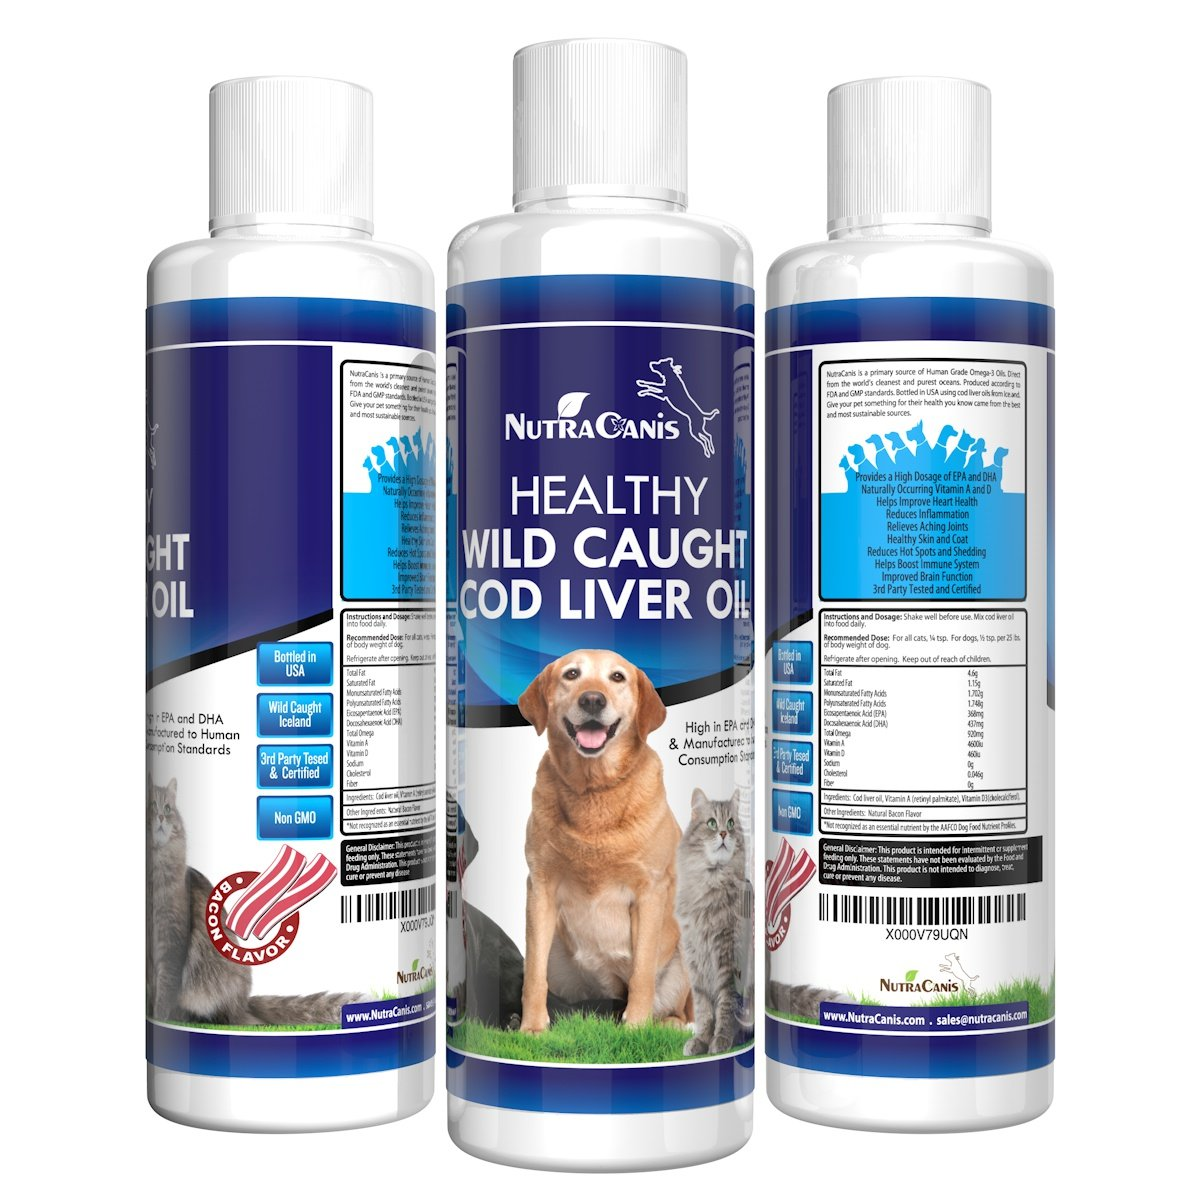 Human Cod Liver Oil For Dogs